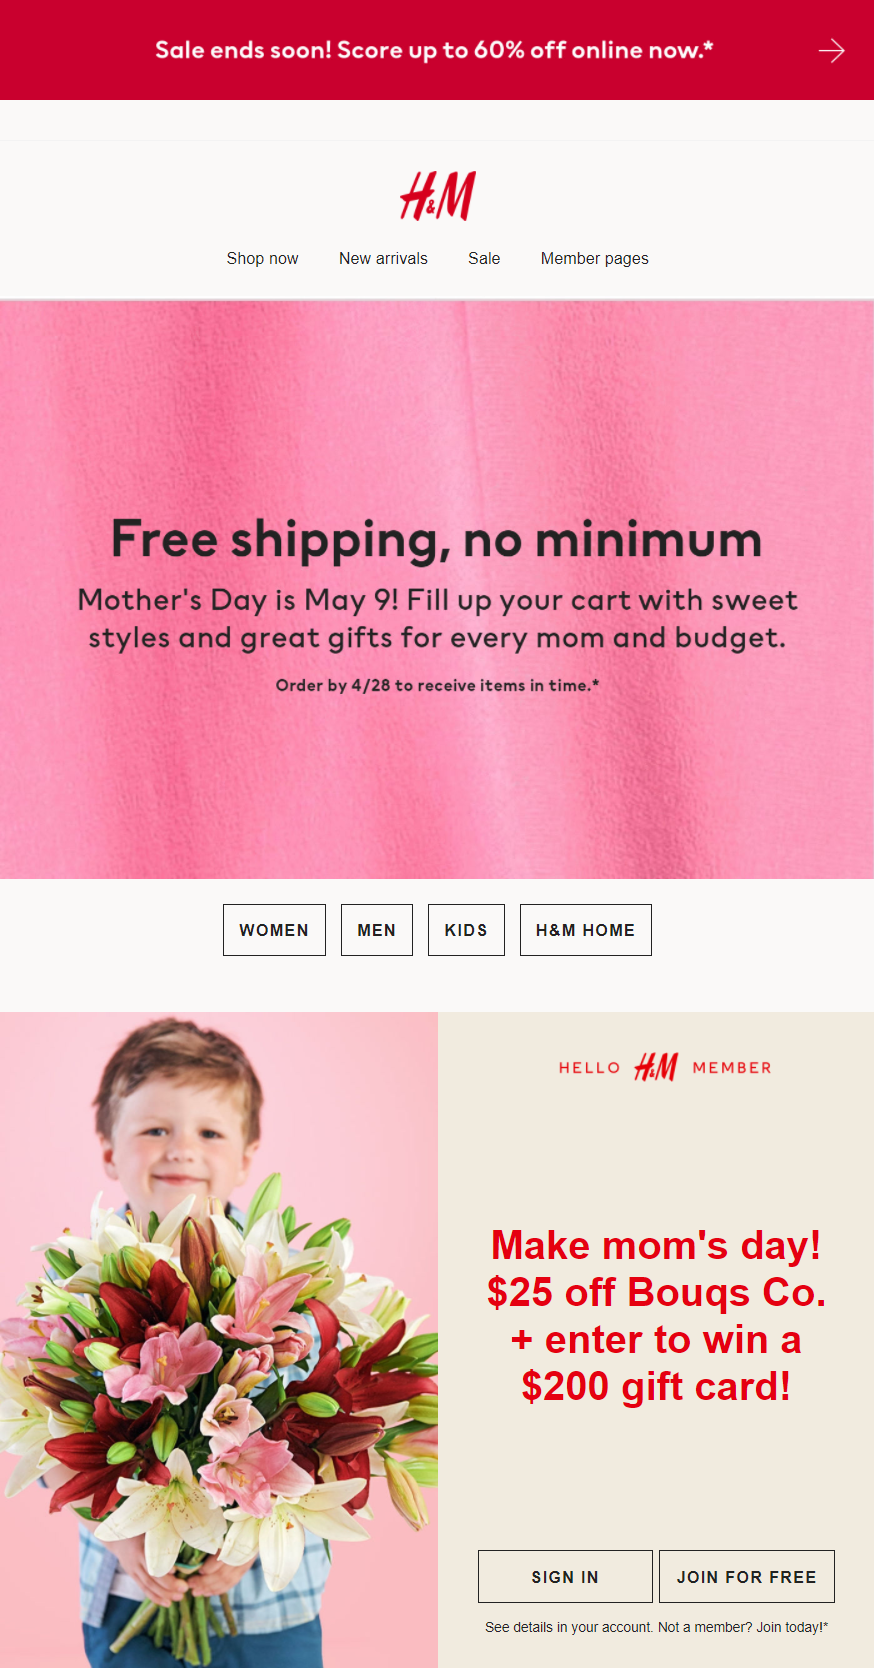 HM-free-shipping-on-mothers-day-gifts-and-everything-else